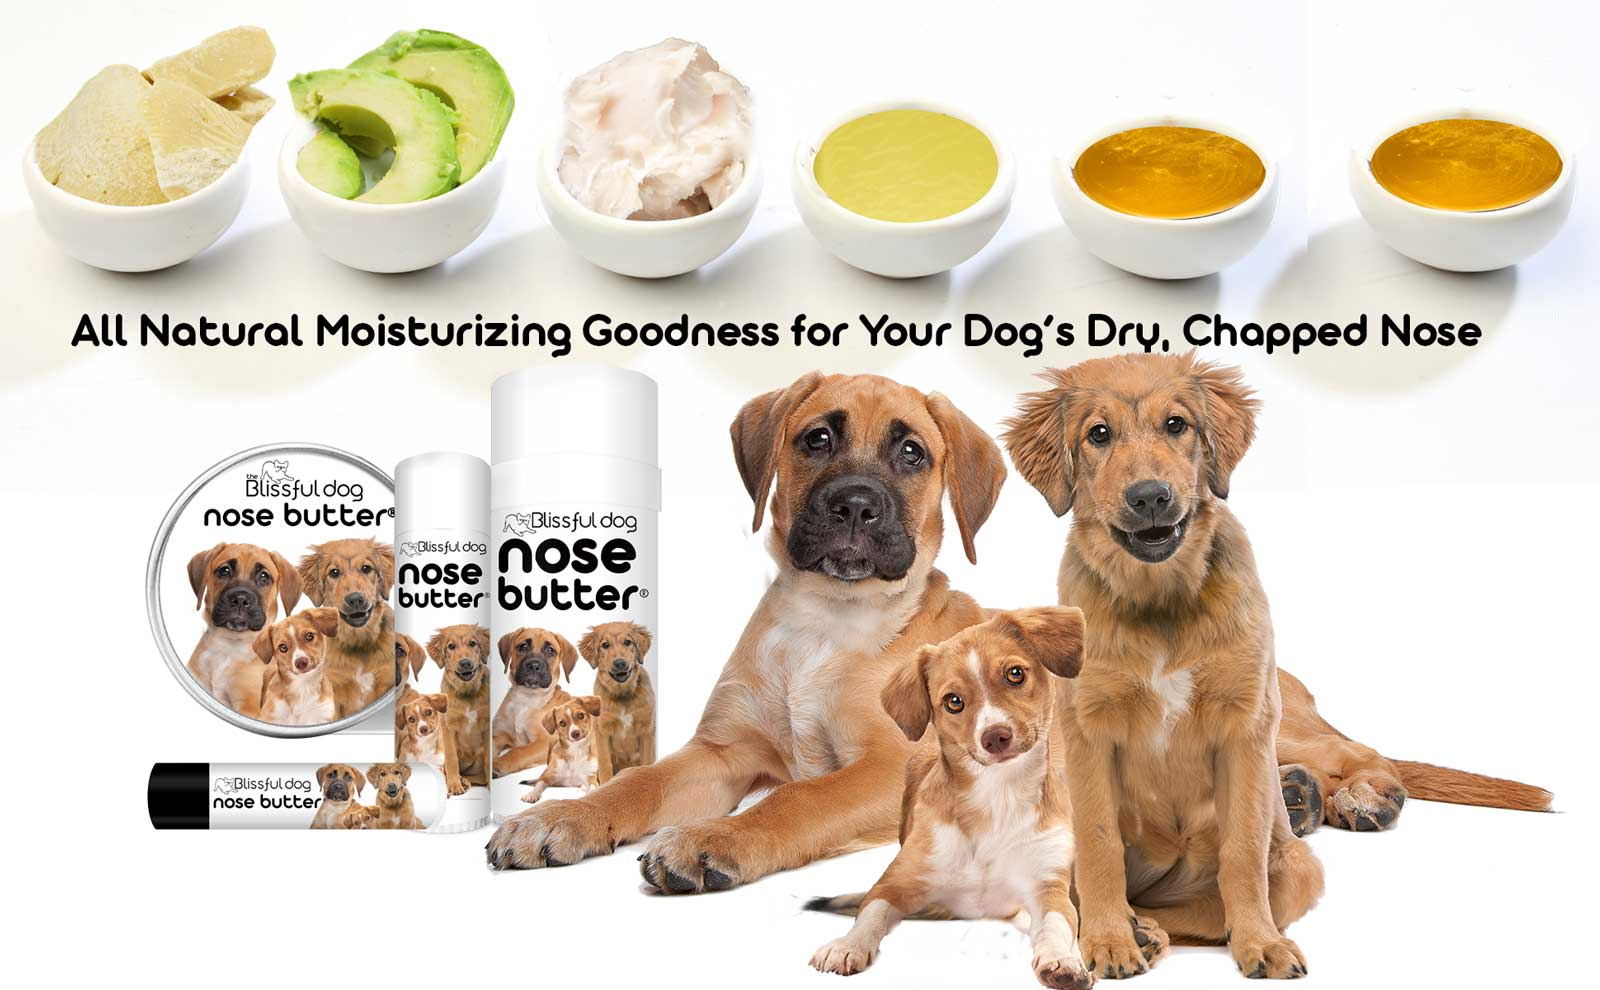 nose butter for dry chapped dog noses